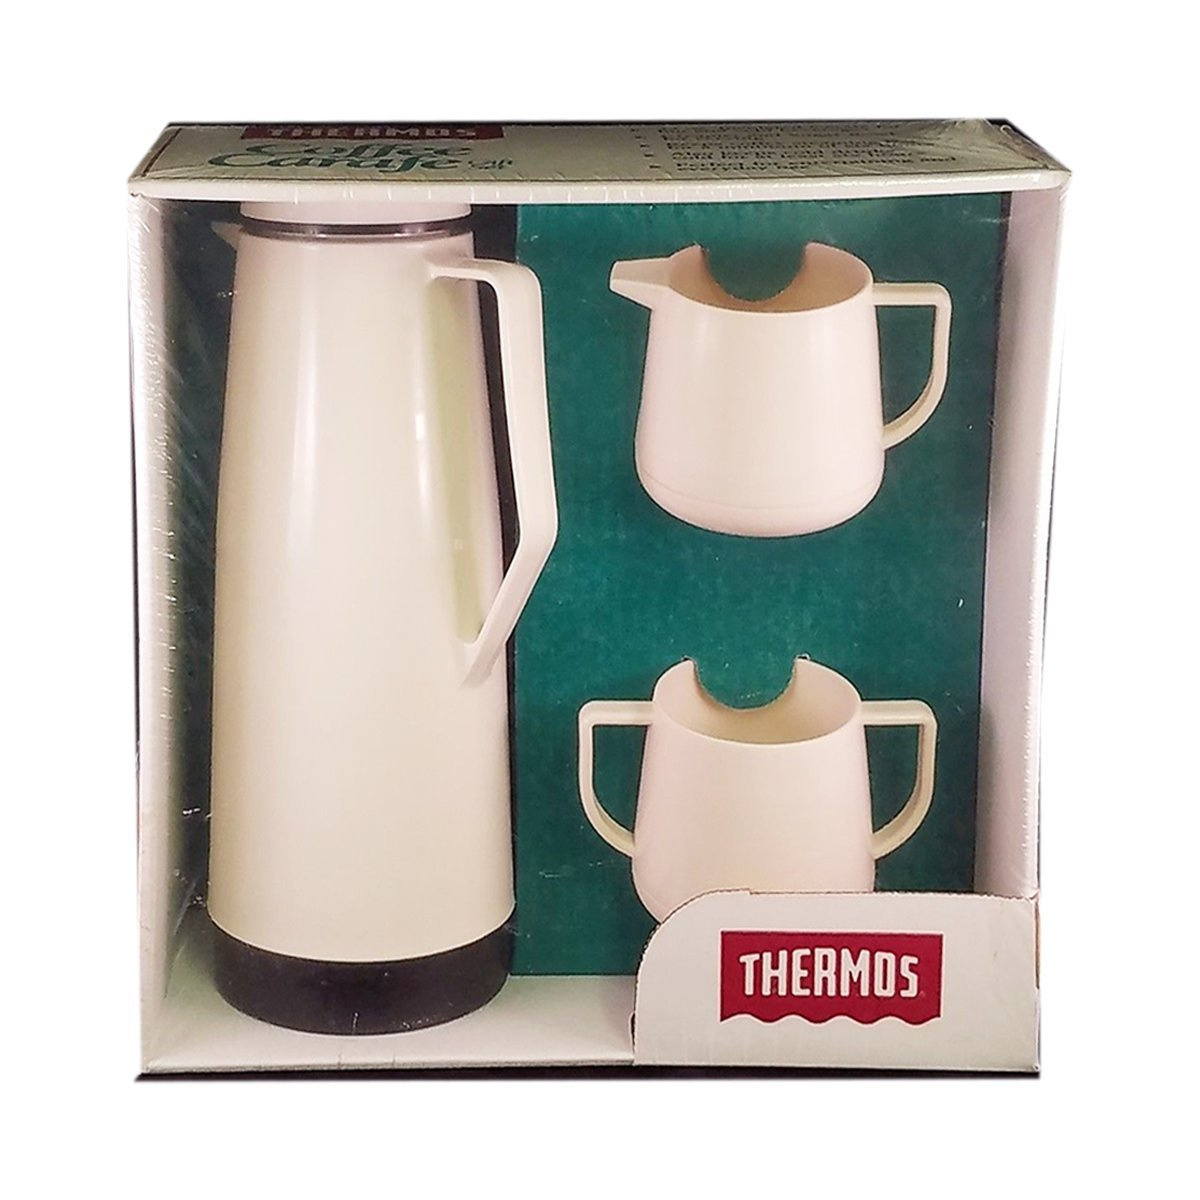 Thermos Coffee Carafe Gift Set by Thermos